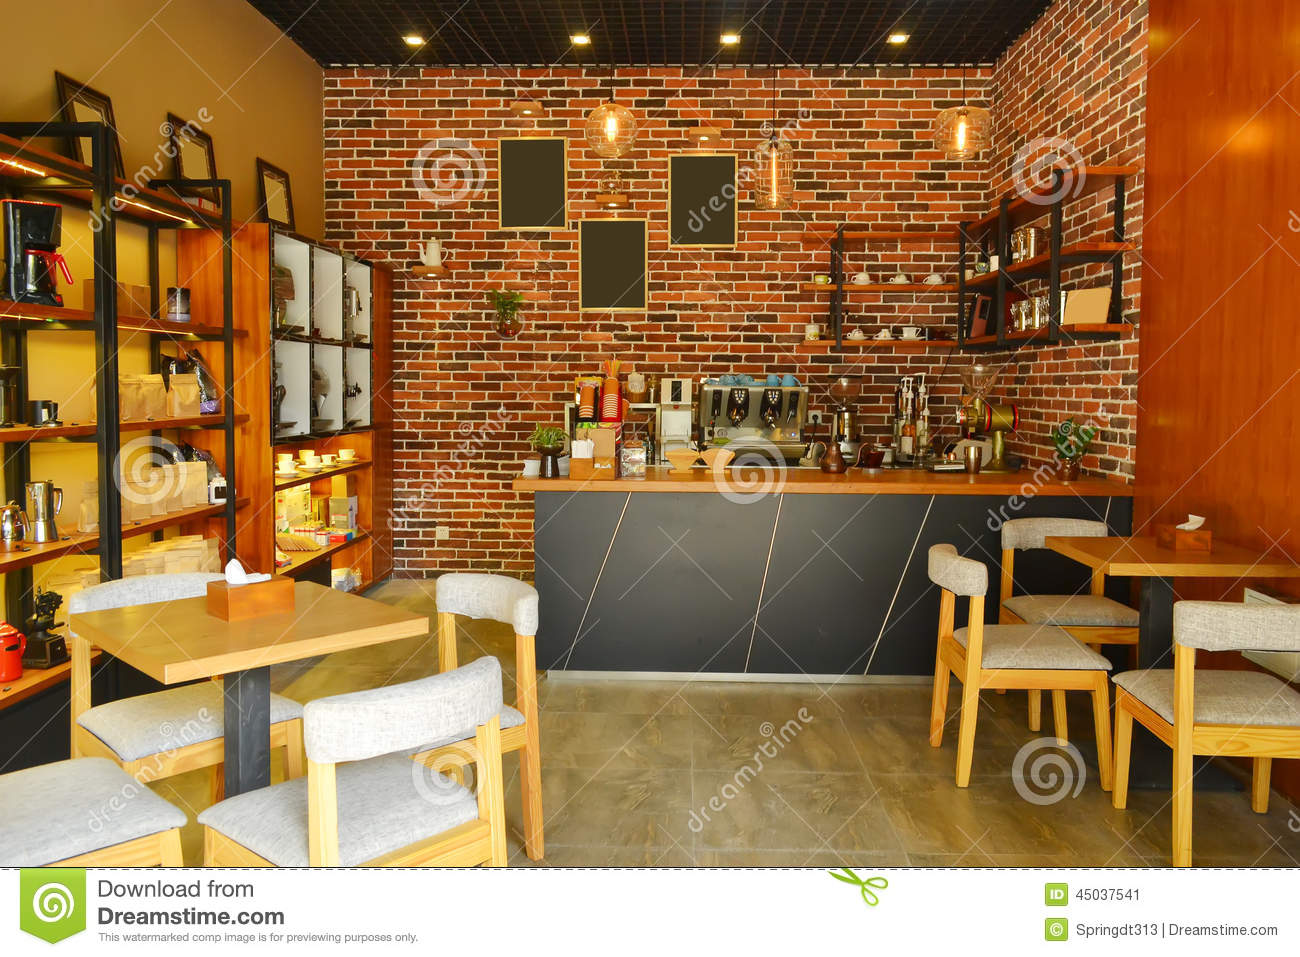 Cafe interior stock image Image of entertainment wine